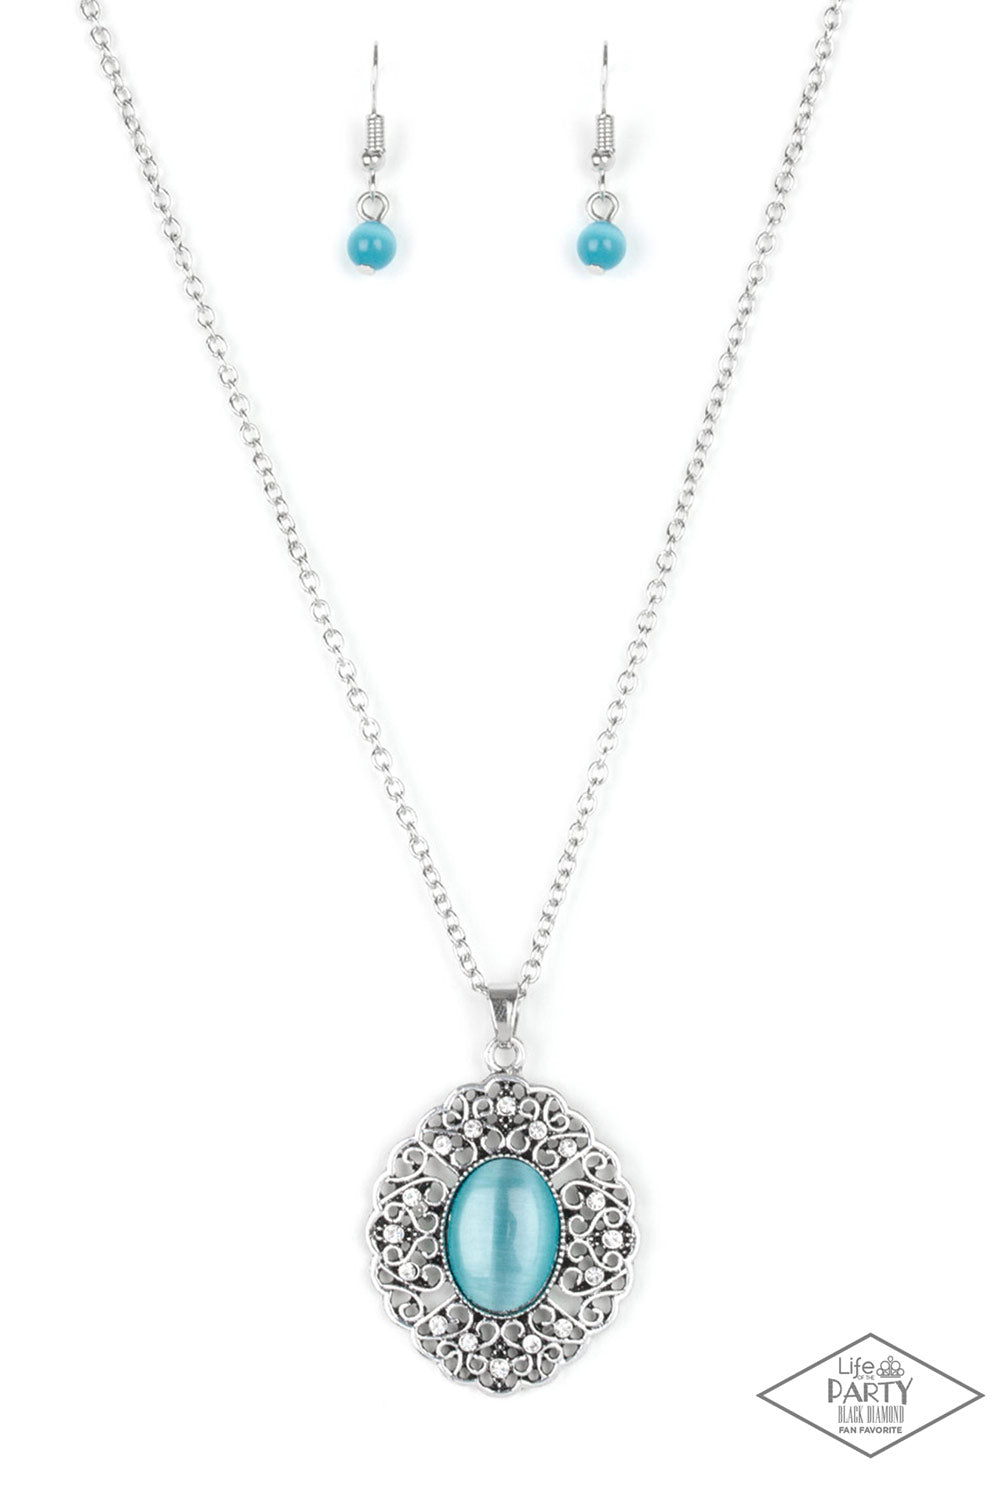 Heart of Glace - Paparazzi Blue Necklace - Be Adored Jewelry